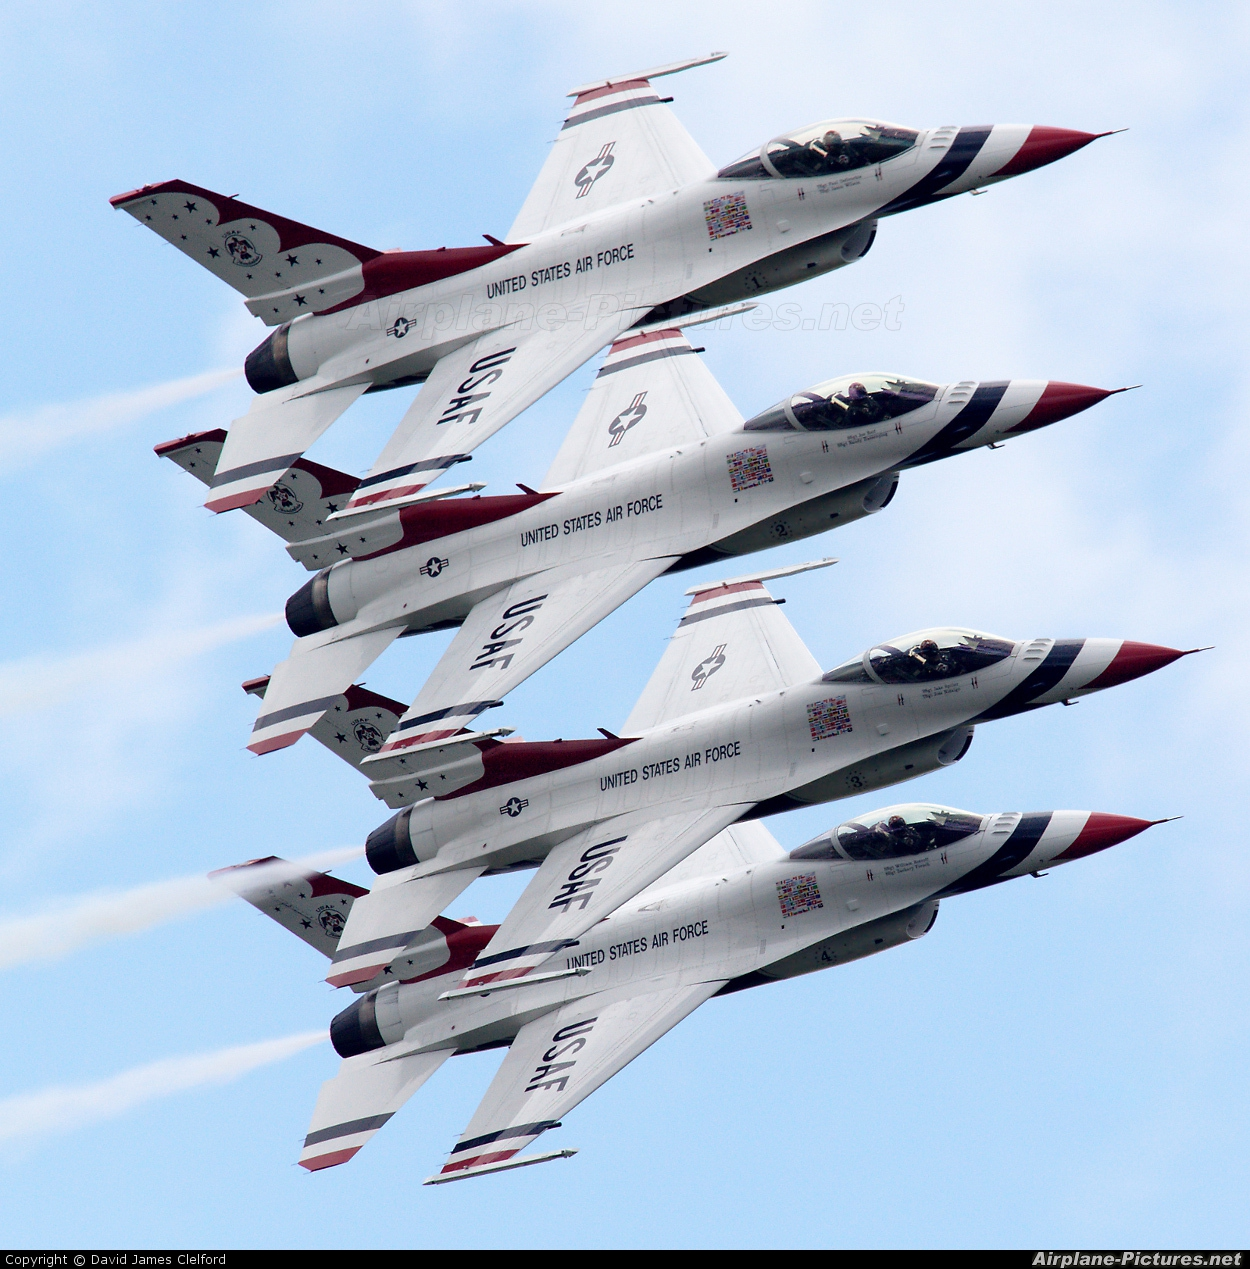 16 thunderbirds 5 plane - photo #30